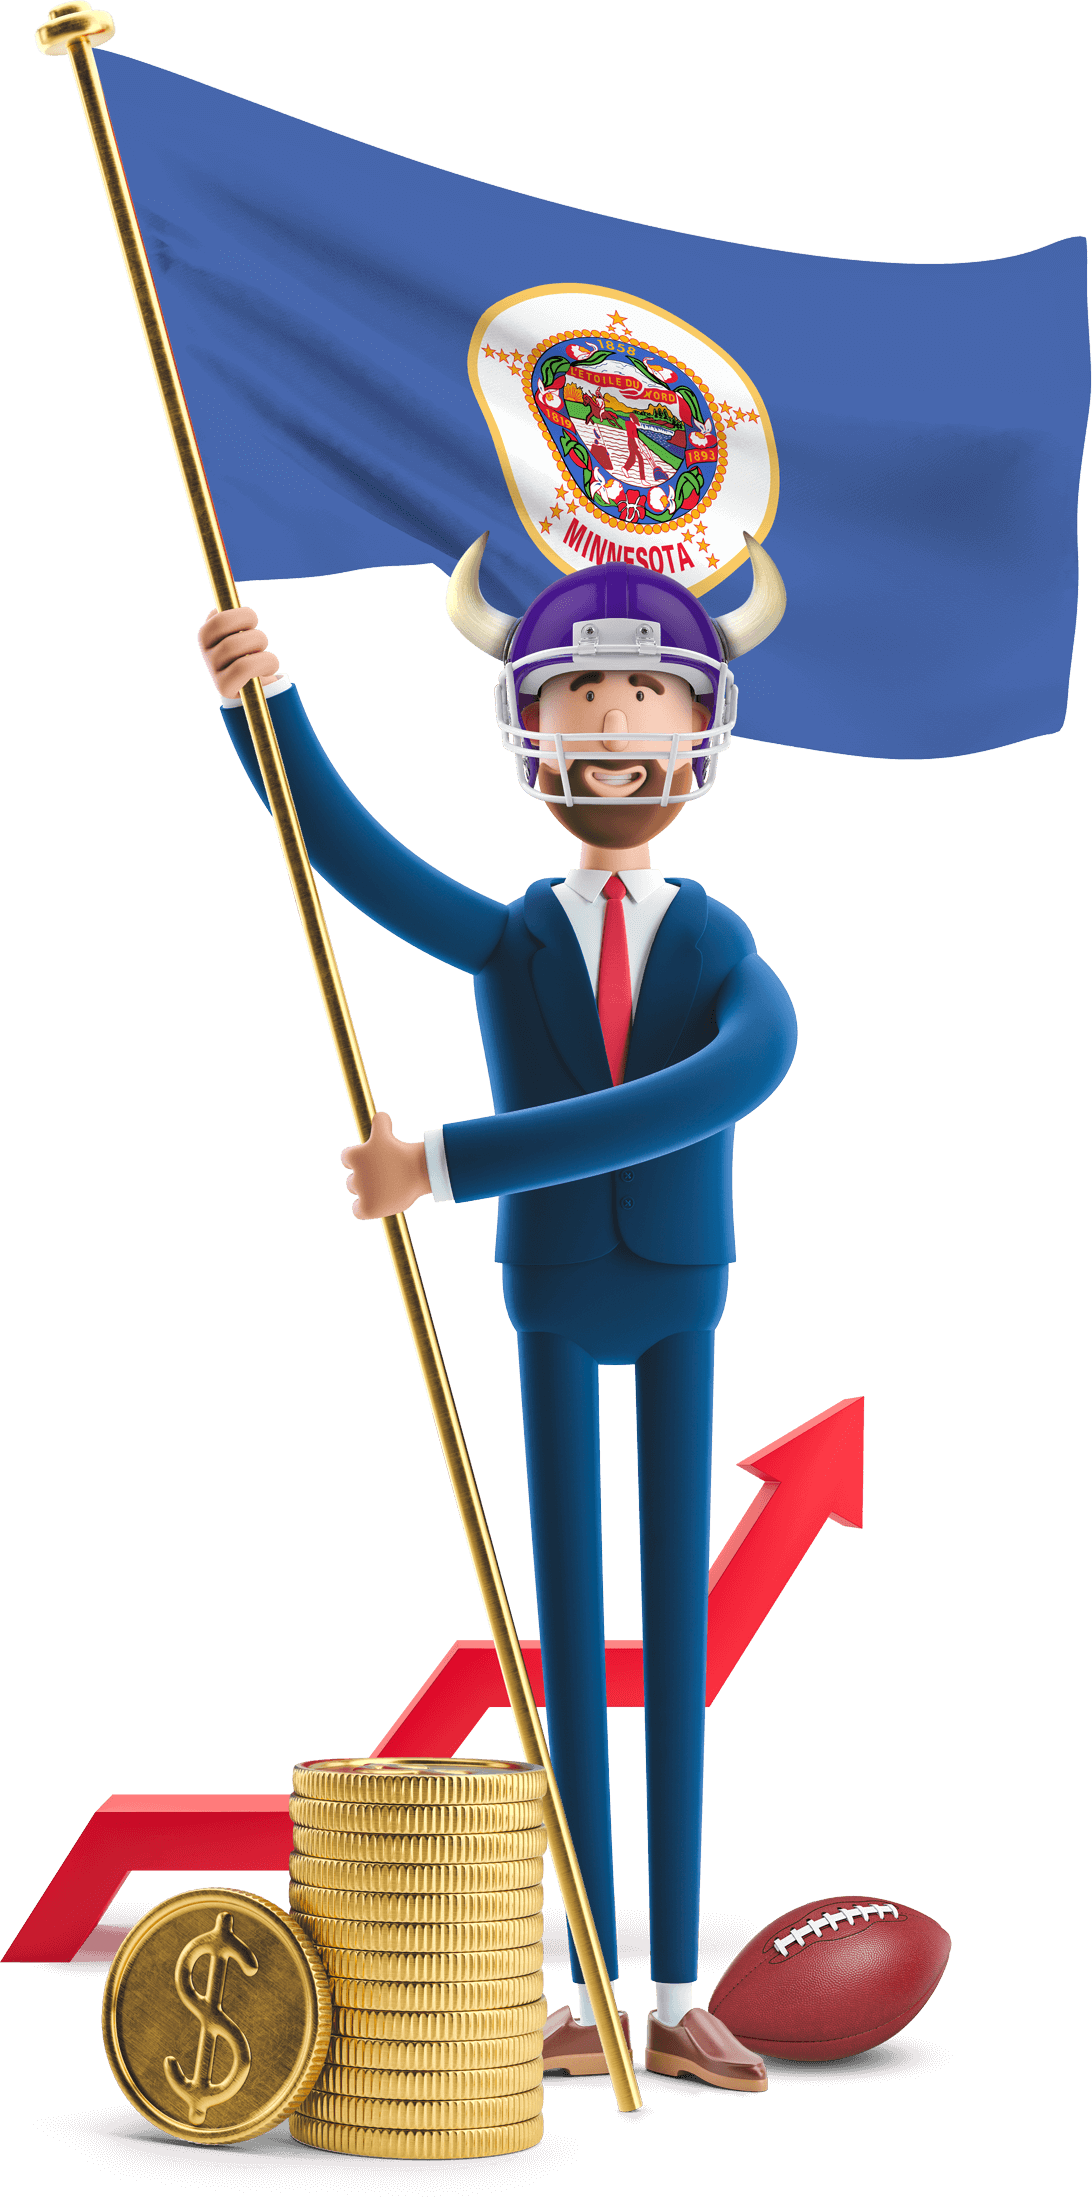 Minnesota flag held by MetCredit USA businessman who's wearing a football helmet with horns and a football at his feet